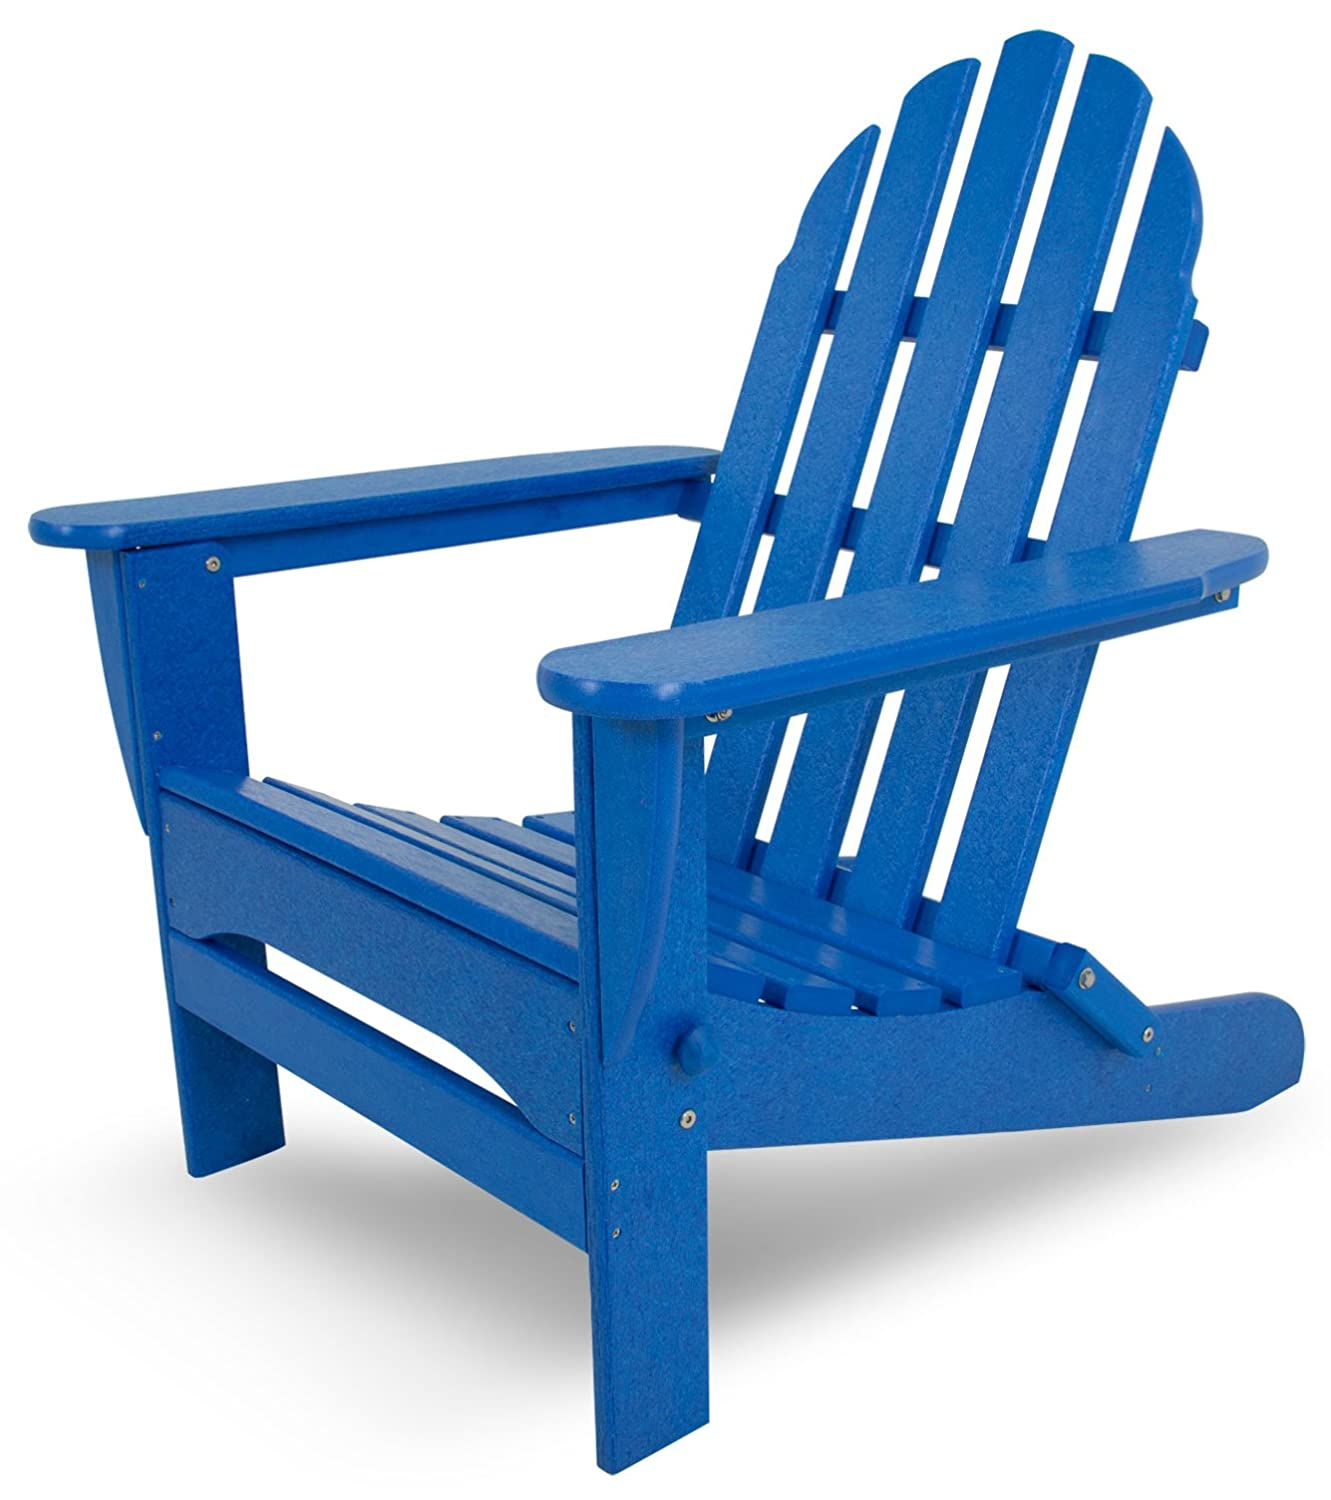 Amazon.com : POLYWOOD AD5030PB Classic Folding Adirondack, Pacific Blue : Adirondack  Chairs : Garden U0026 Outdoor